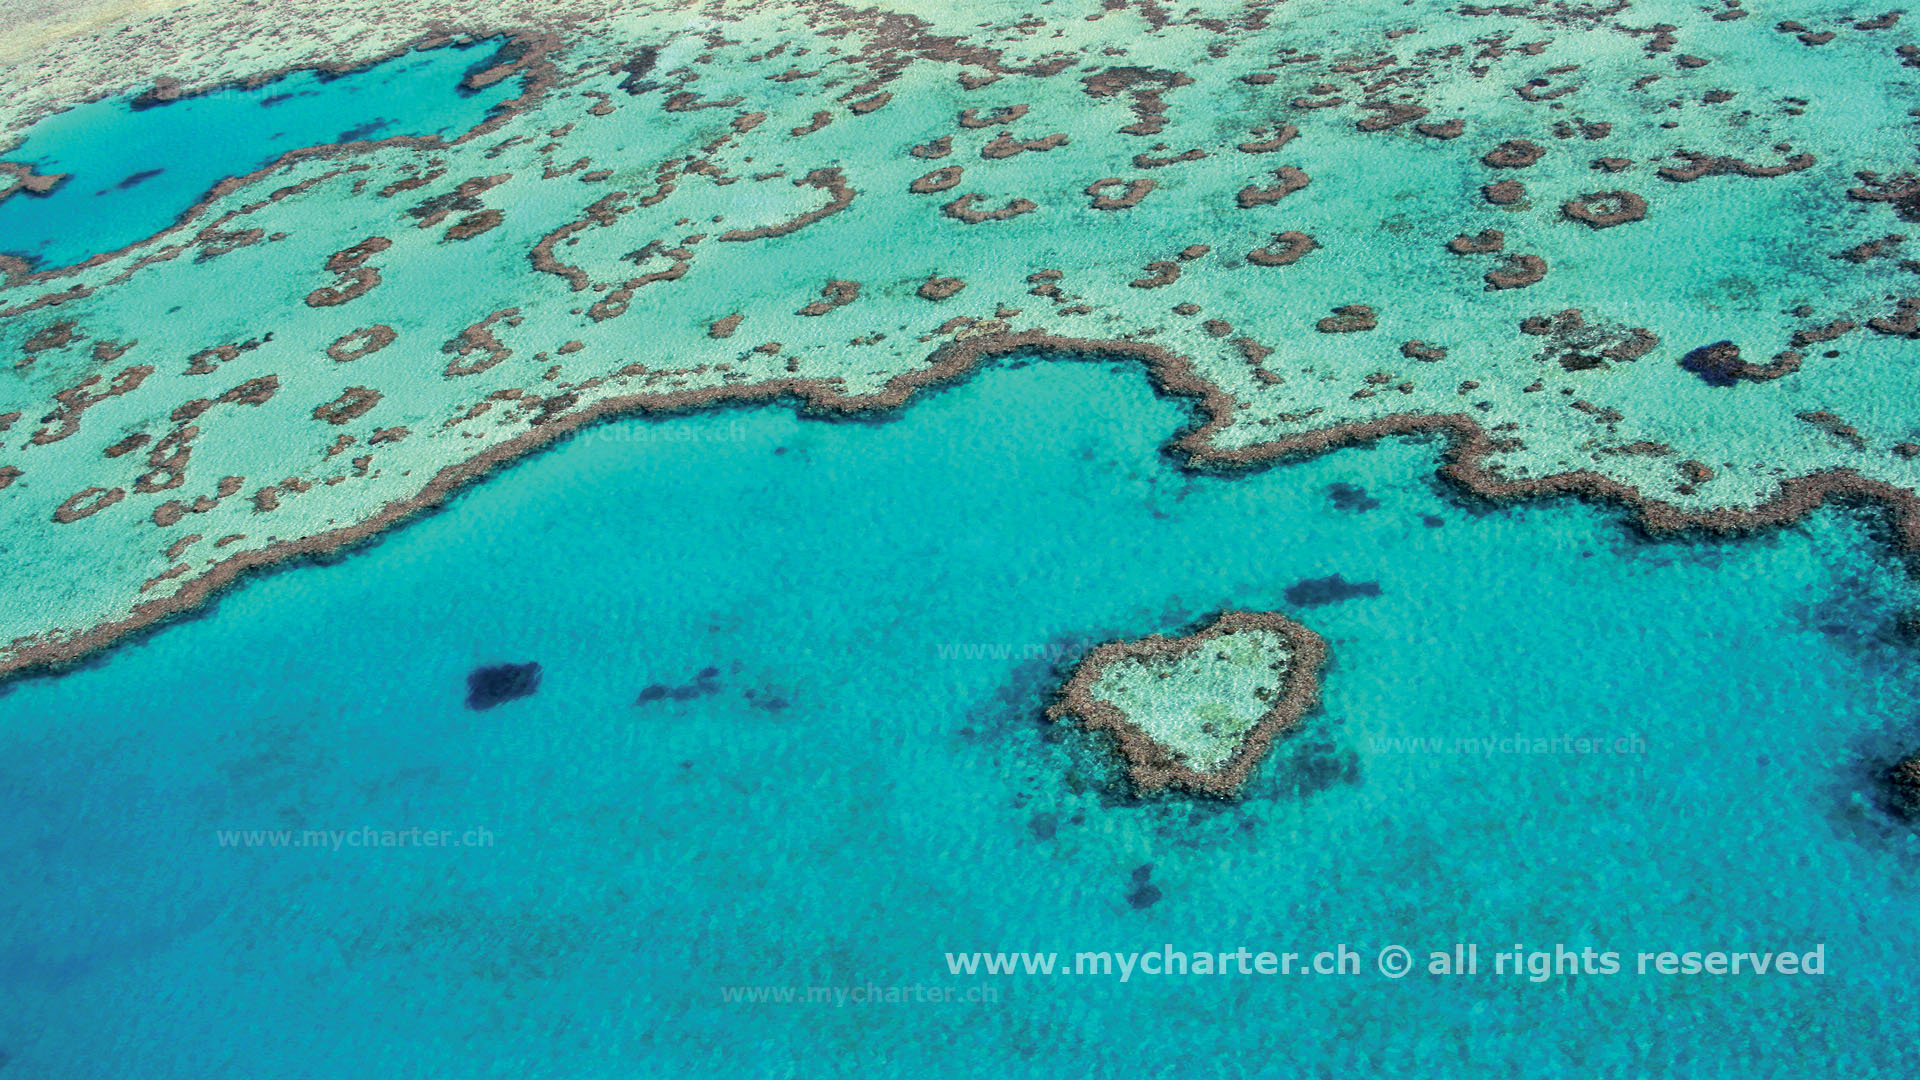 Yachtcharter Australien - Heart Reef Great Barrier Reef